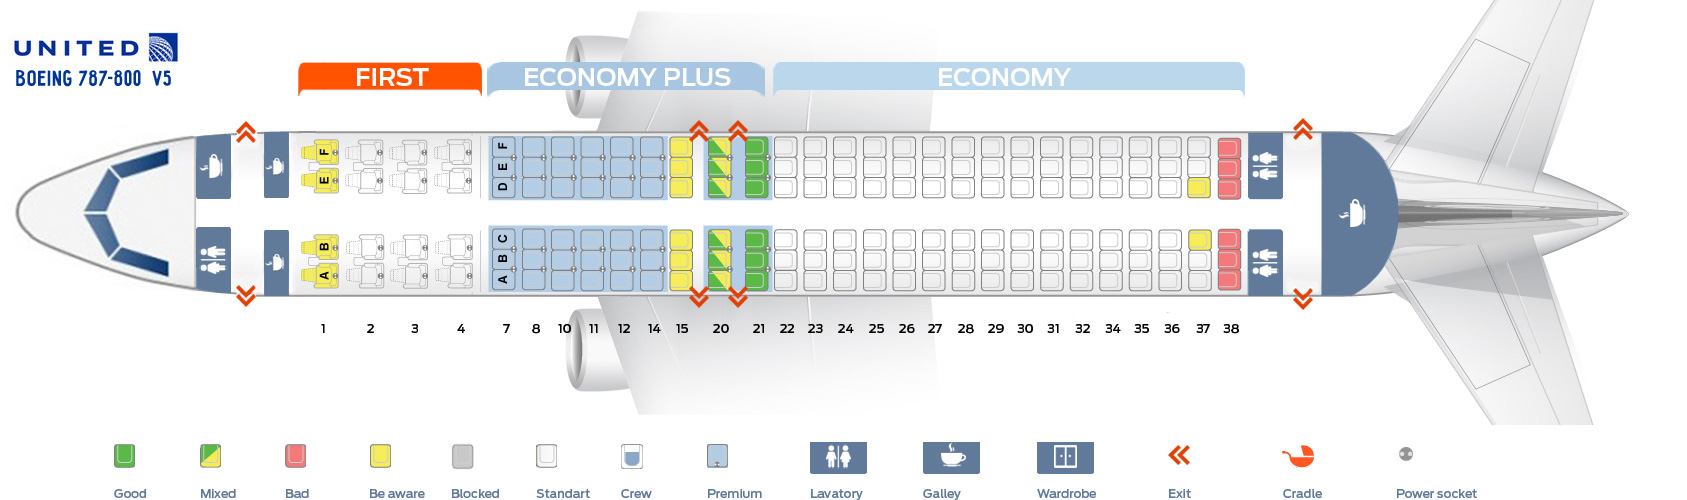 Seat_map_United_Airlines_Boeing_737_800_v5